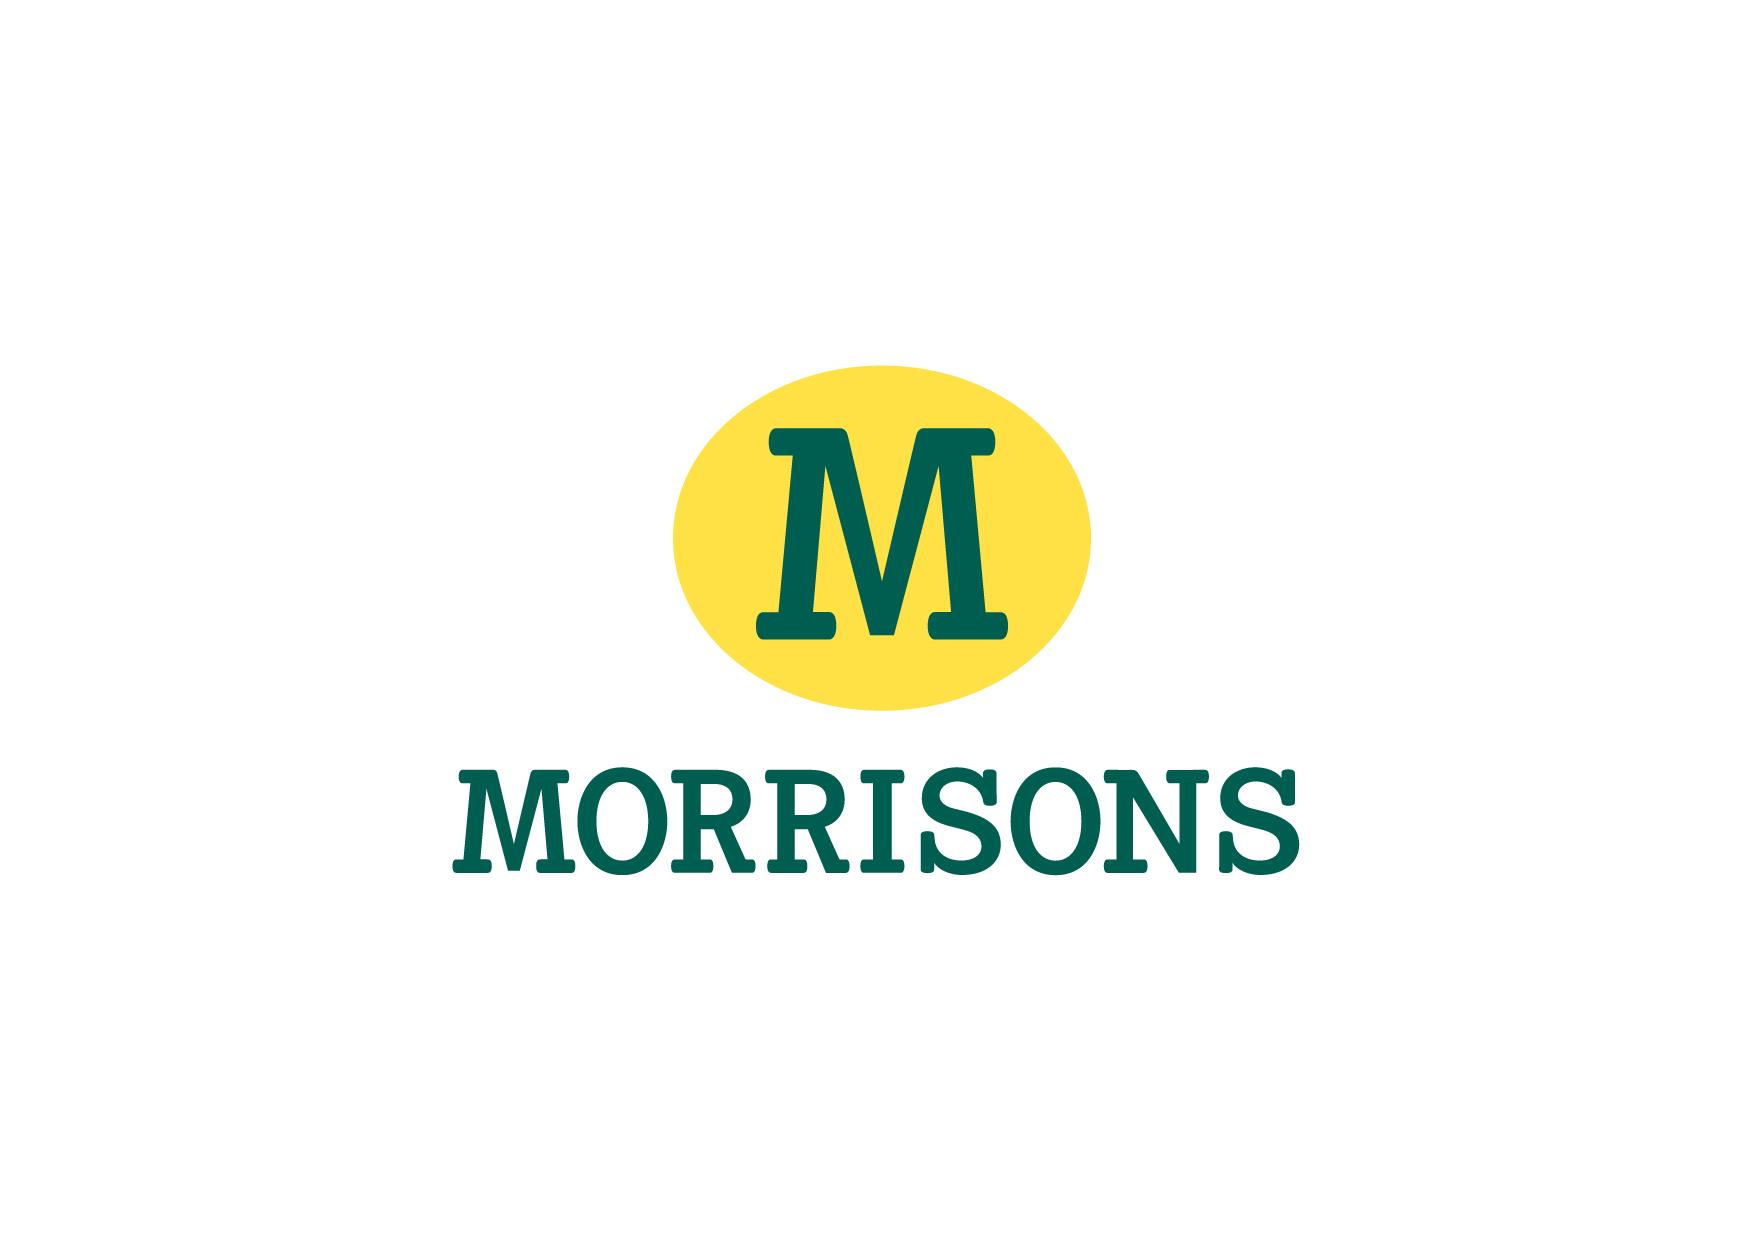 5 Morrisons voucher in The Sun | Be Clever With Your Cash